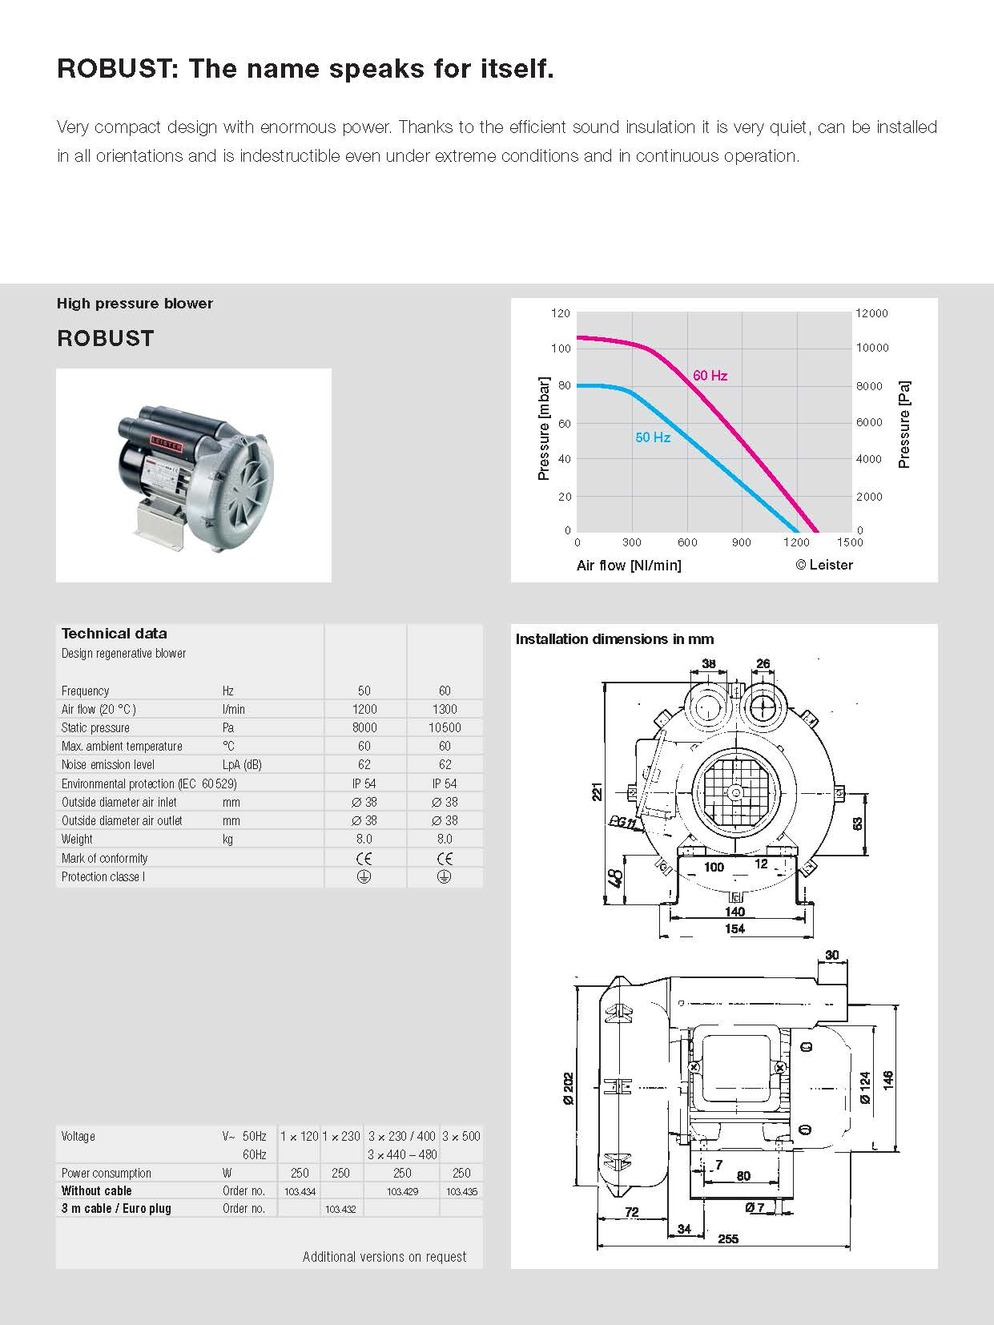 Leister Aso Blower : Robust leister process heat sil technology sdn bhd